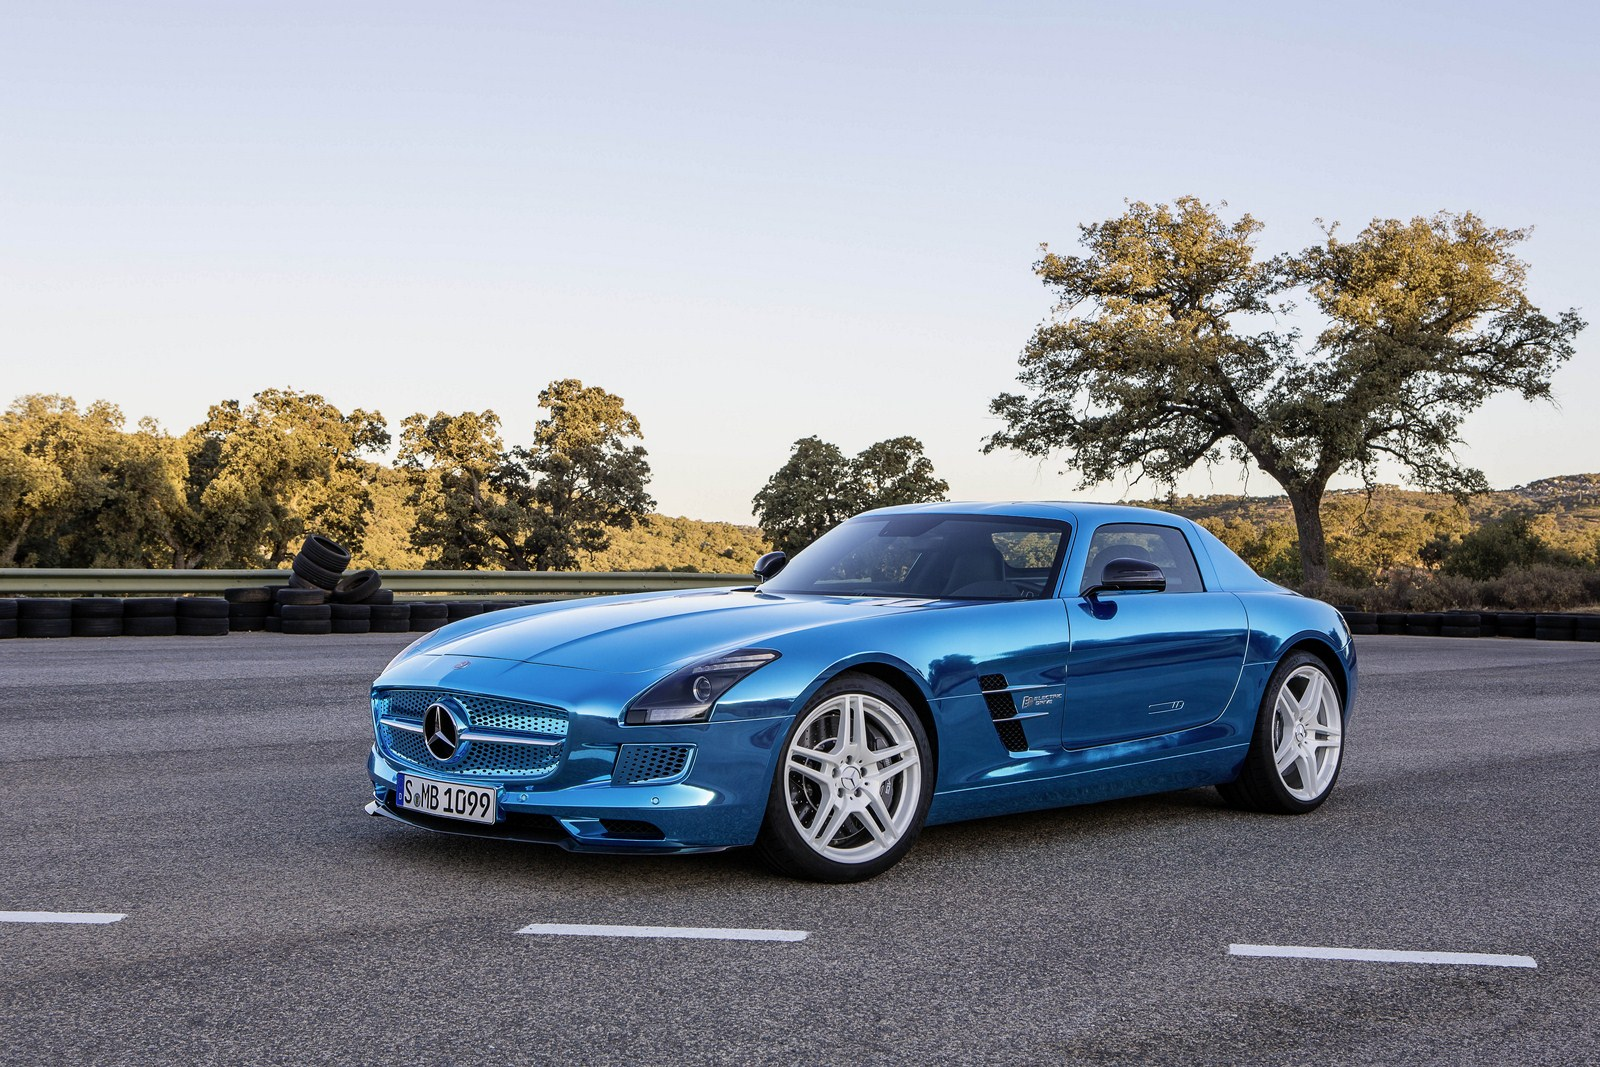 http://www.autoblog.gr/wp-content/gallery/mercedes-sls-amg-electric-drive/mercedes-sls-amg-electric-drive-2_0.jpg